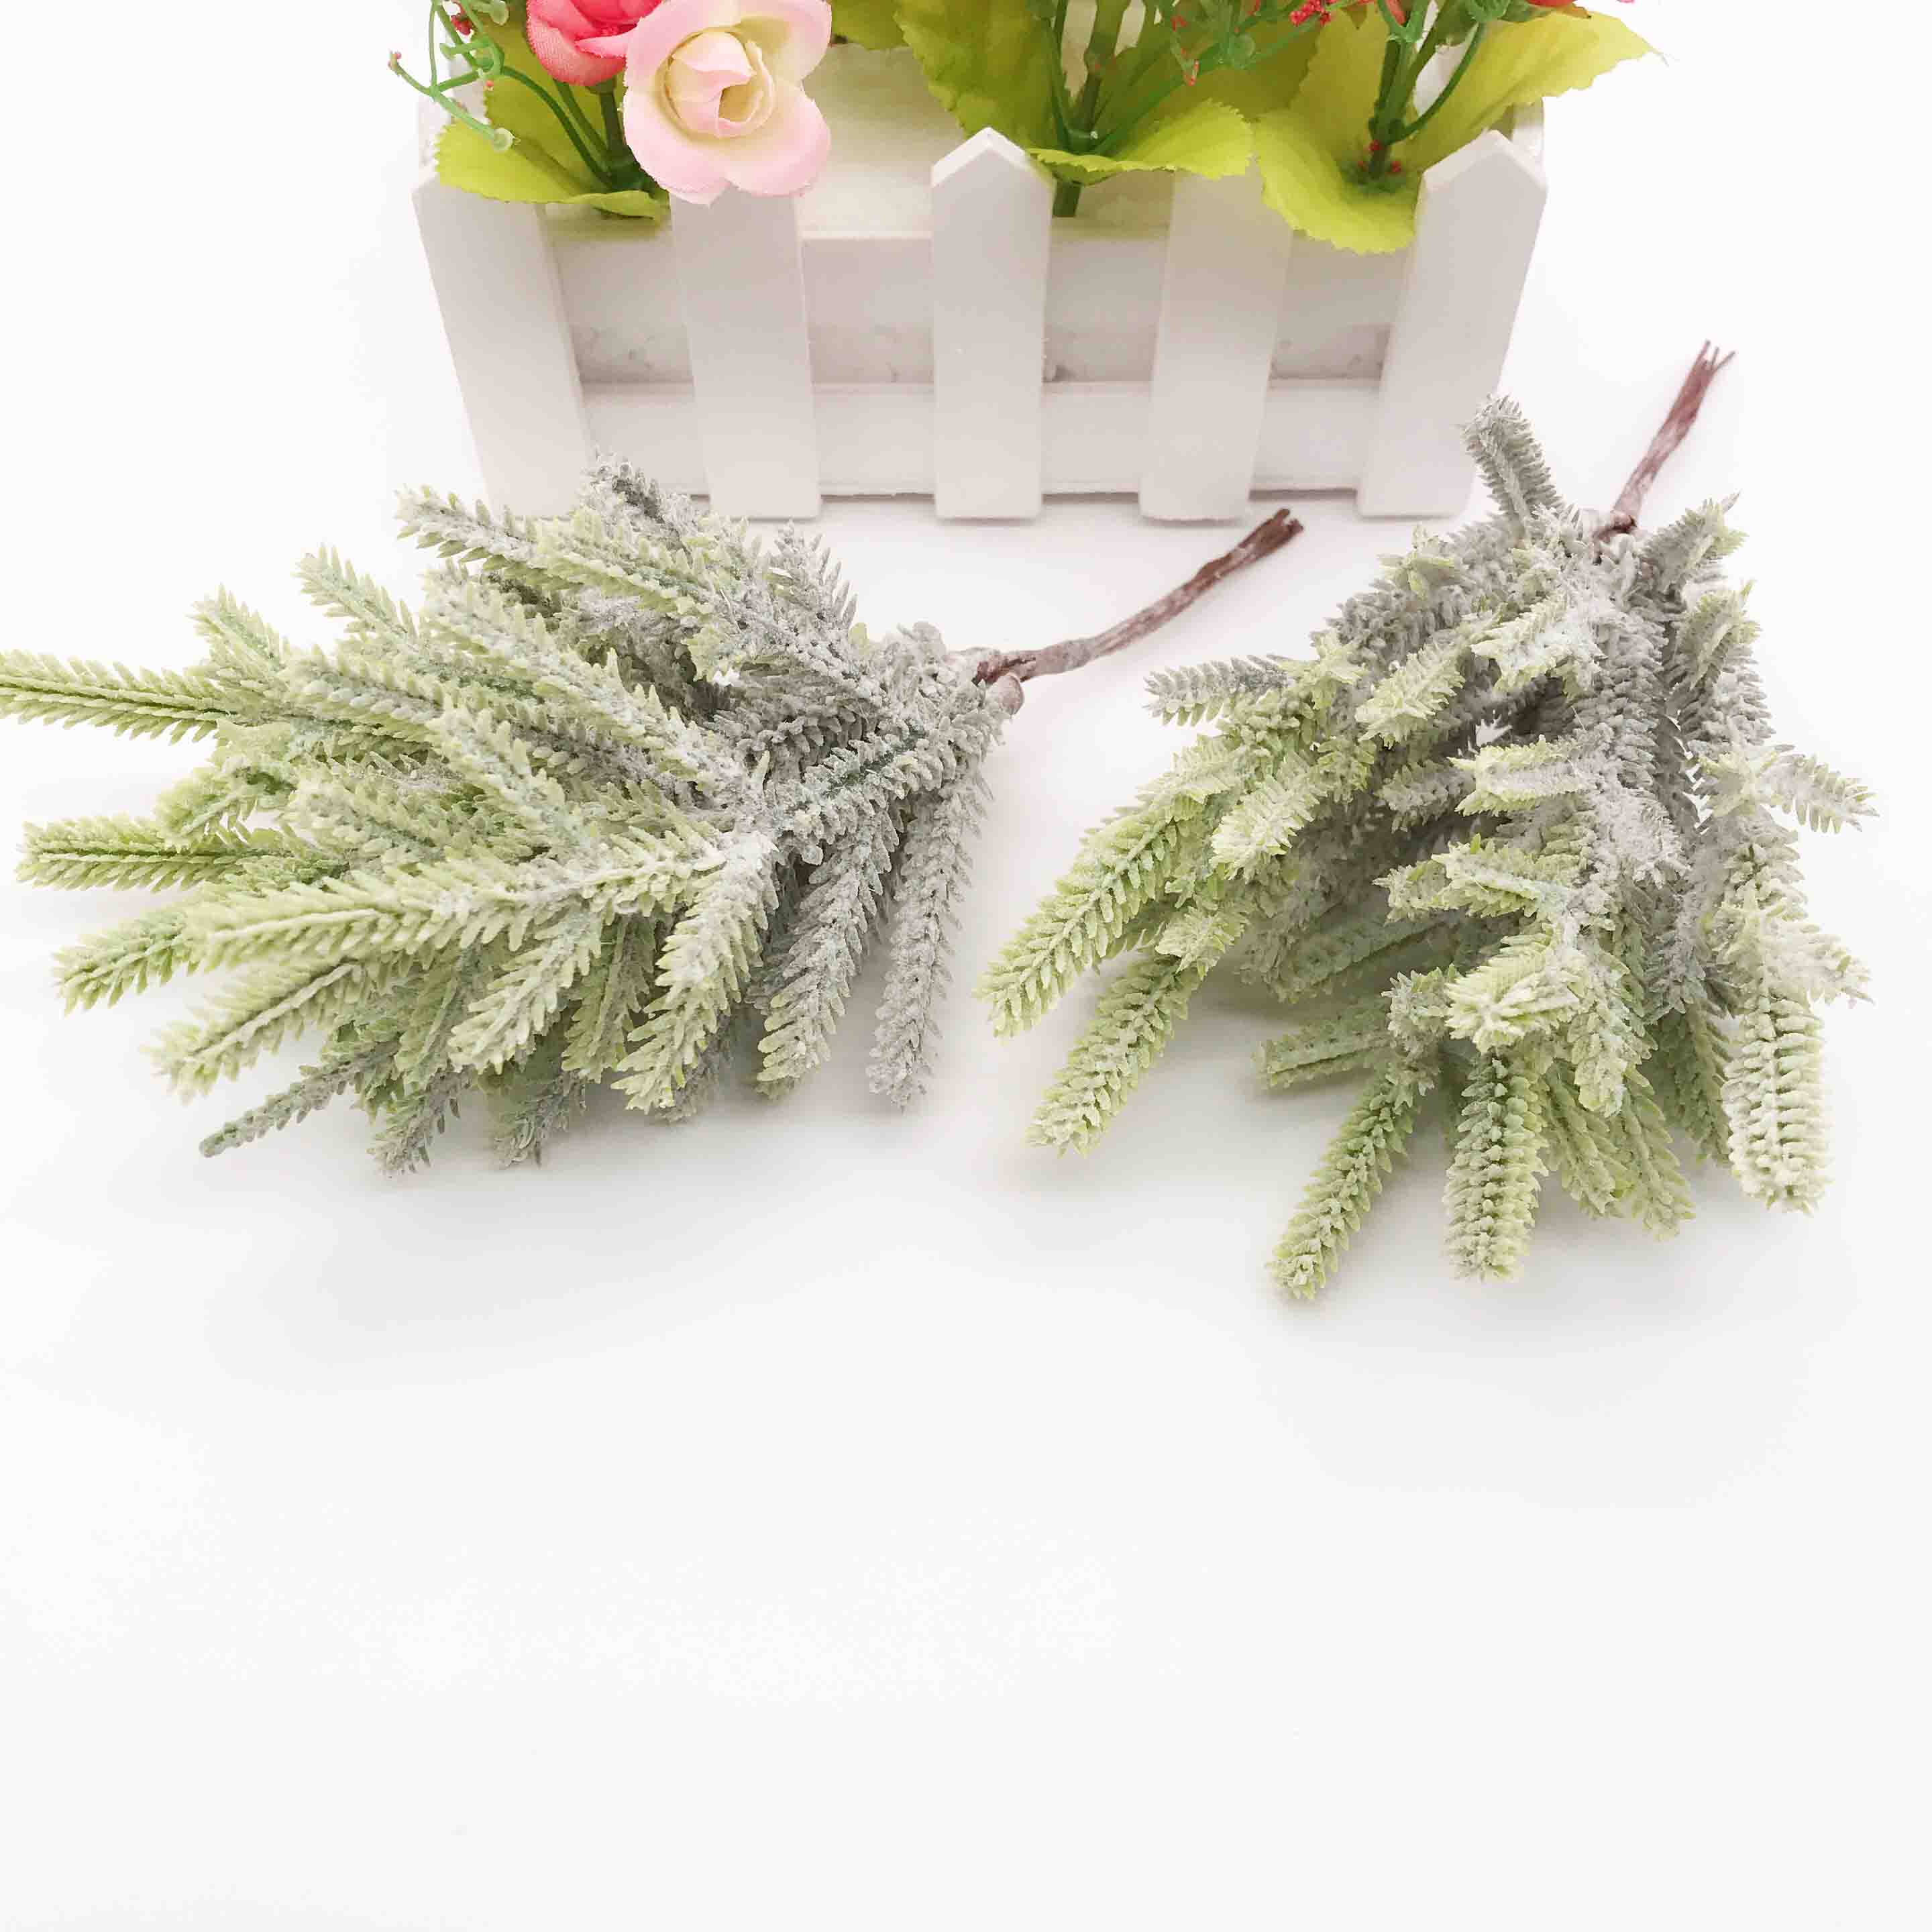 Scrapbook Ornament Party Artificial Grass Fake Plant Flowers  Simulation Ferns